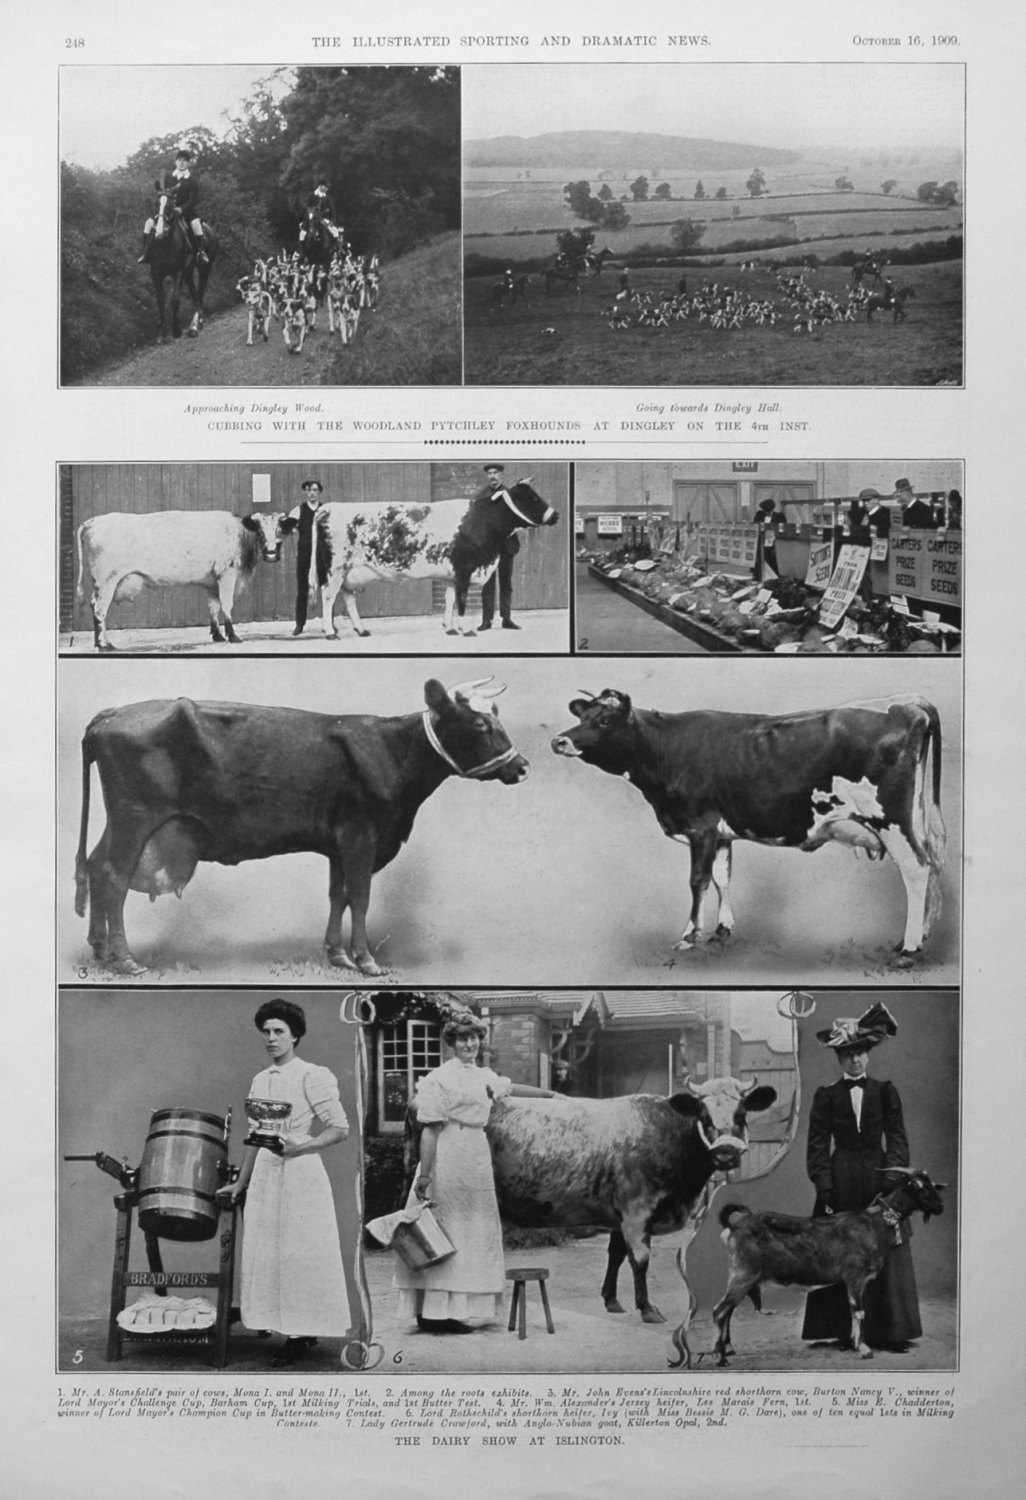 The Dairy Show at Islington.